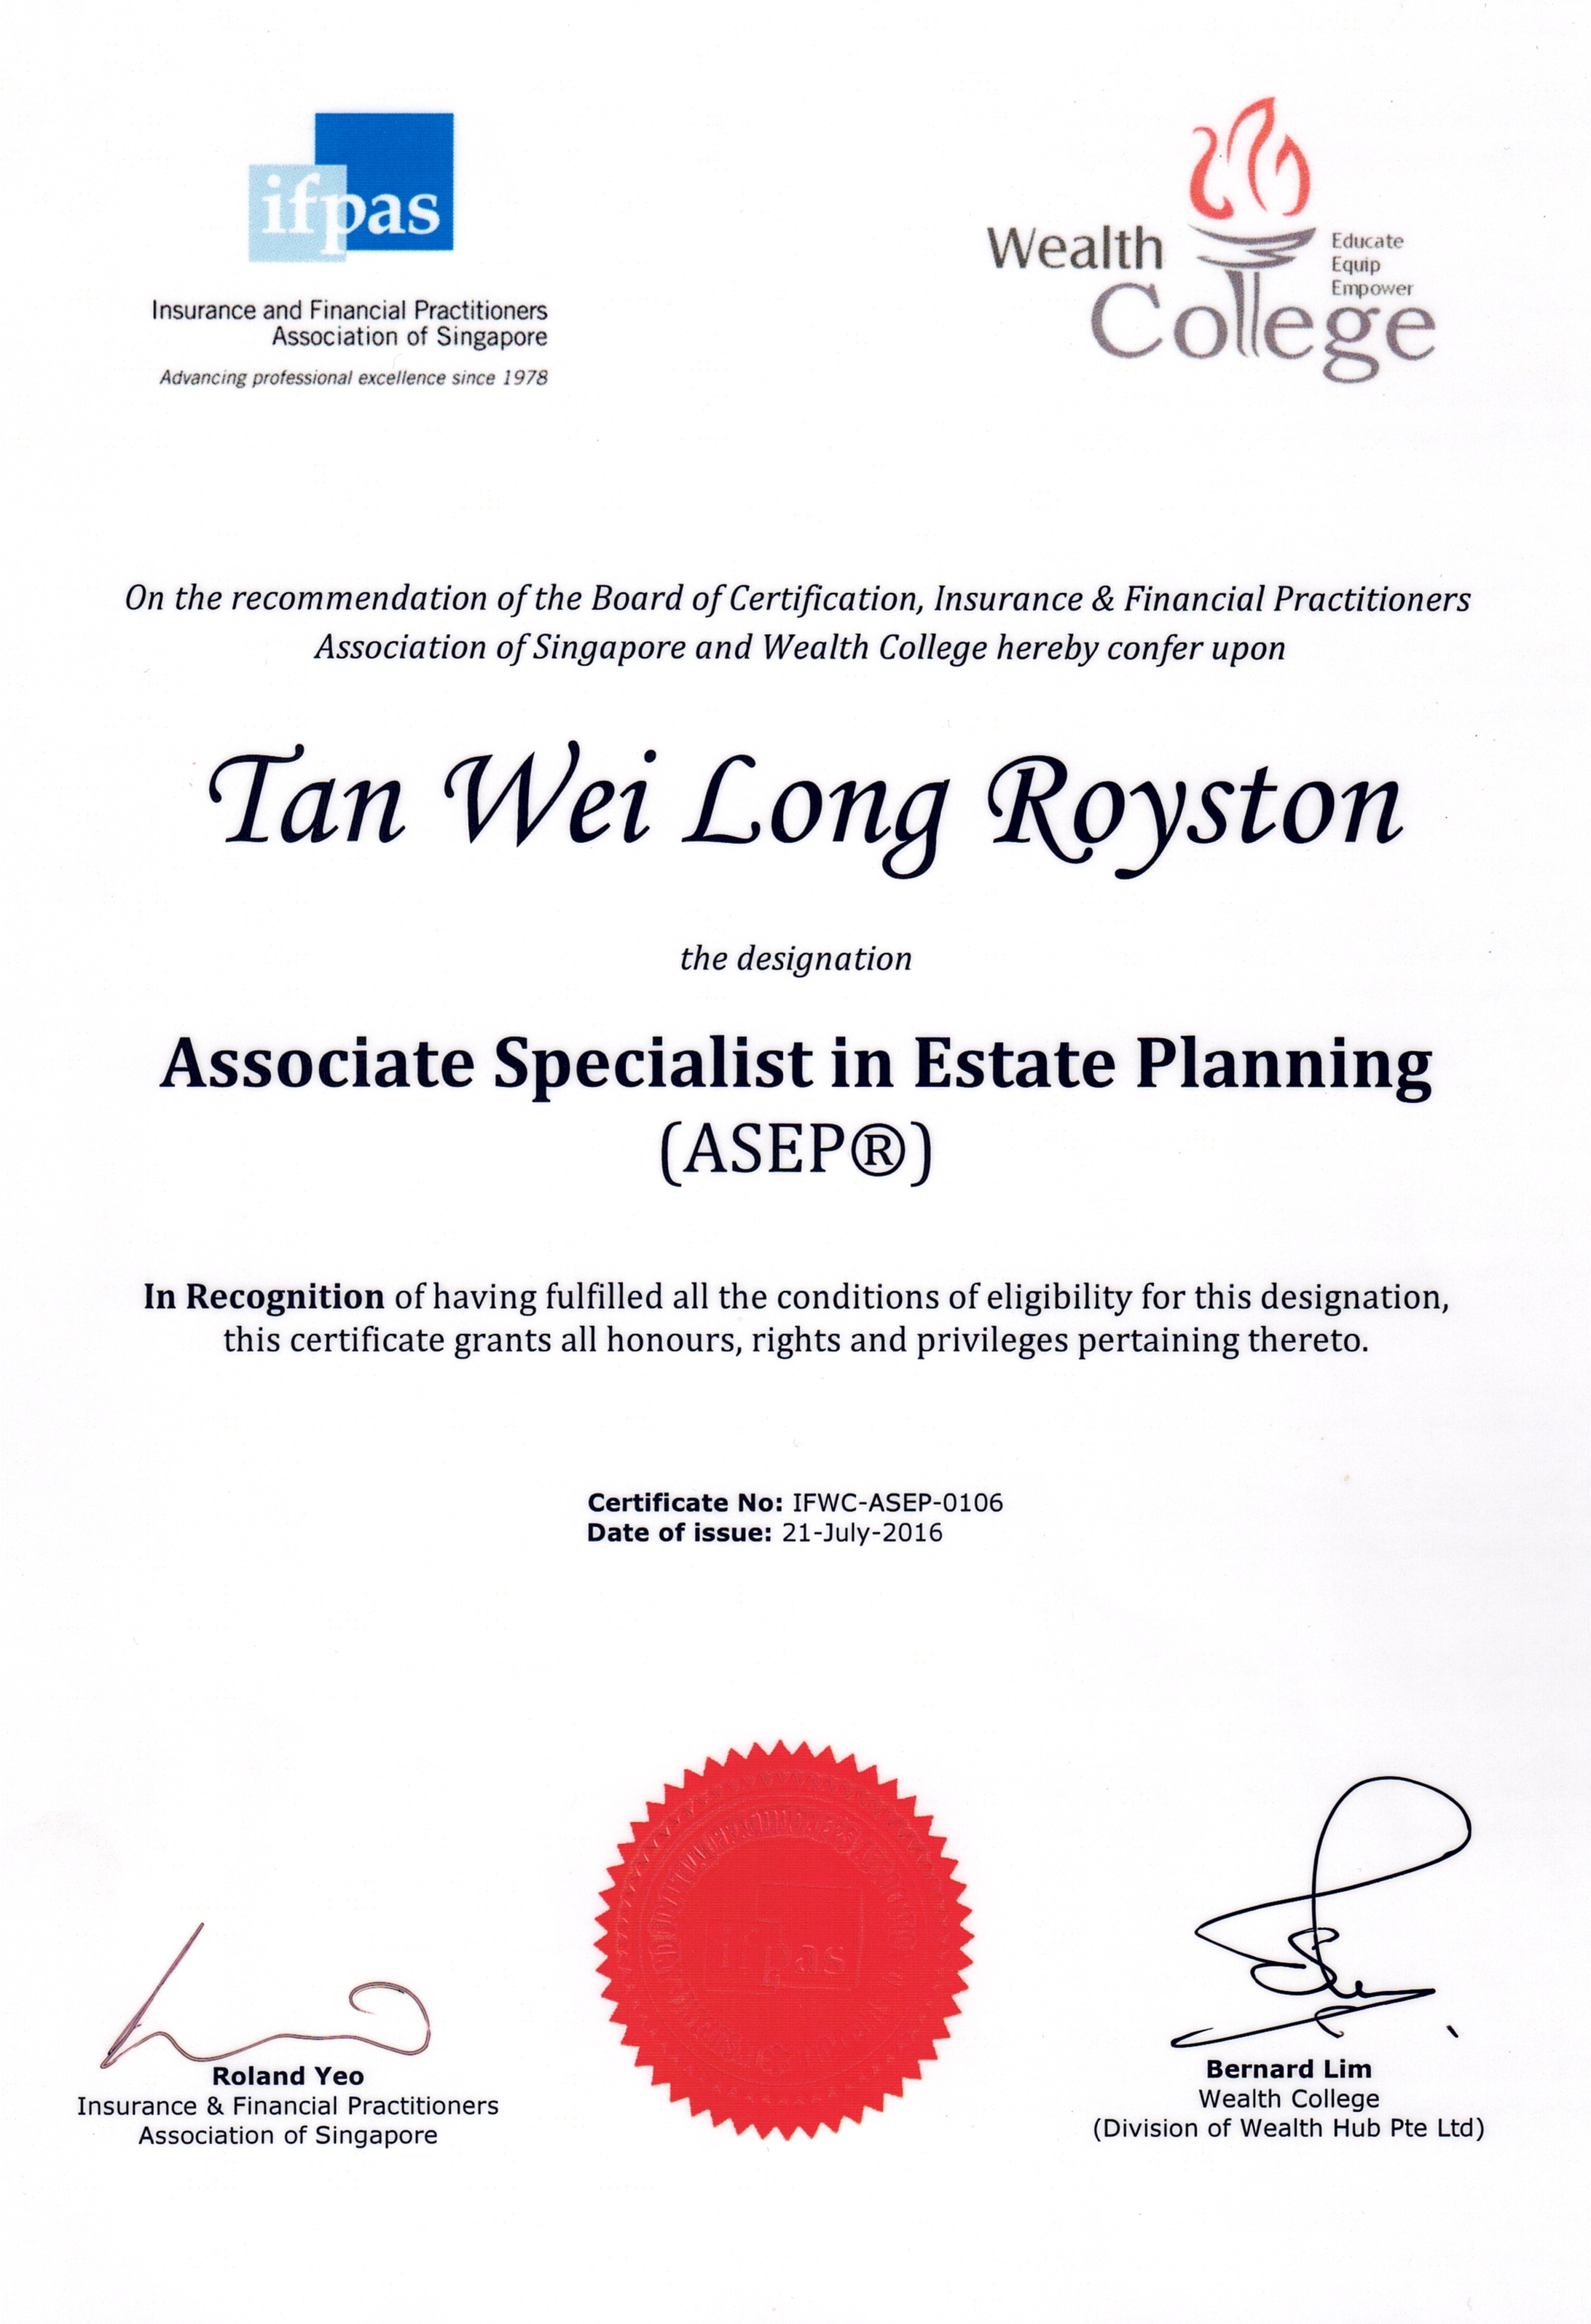 Associate Specialist in Estate Planning (ASEP®)